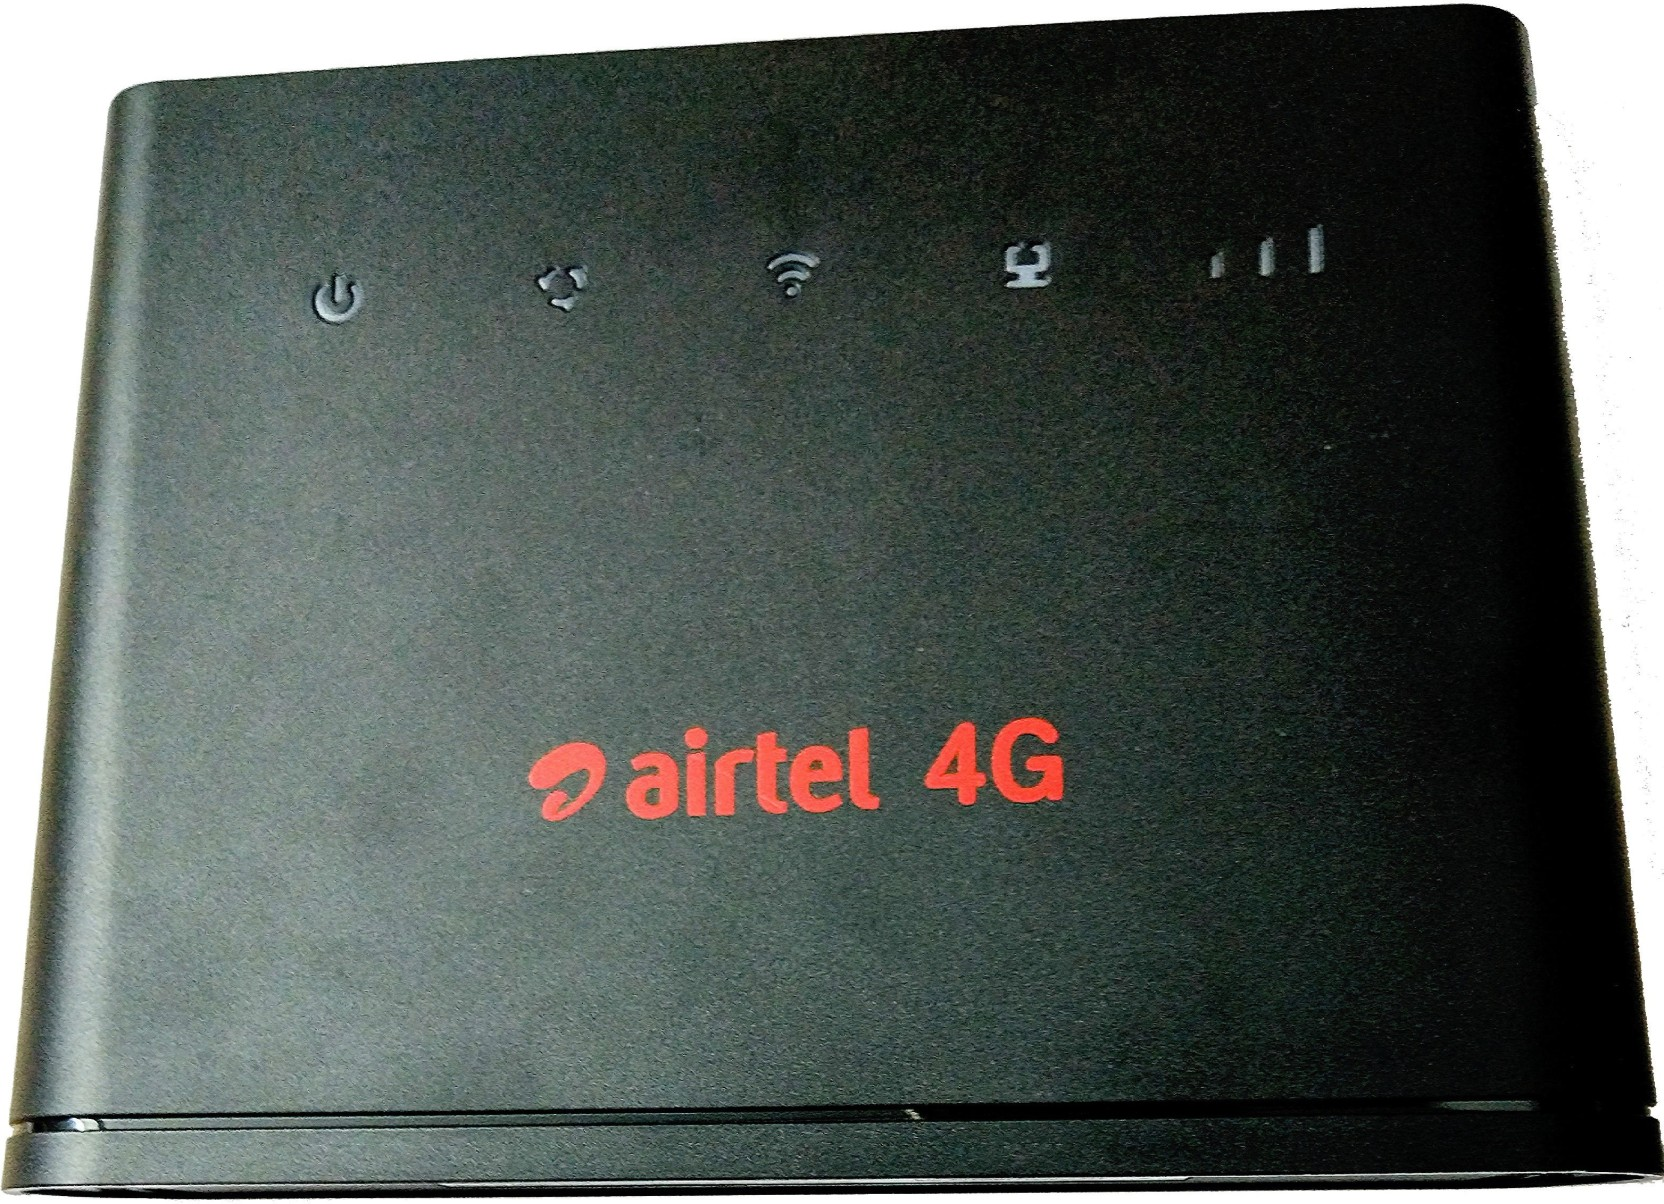 Huawei B310s 927 Unlocked With Antenna Router Modem Mifi E8372 150mbps Add To Cart